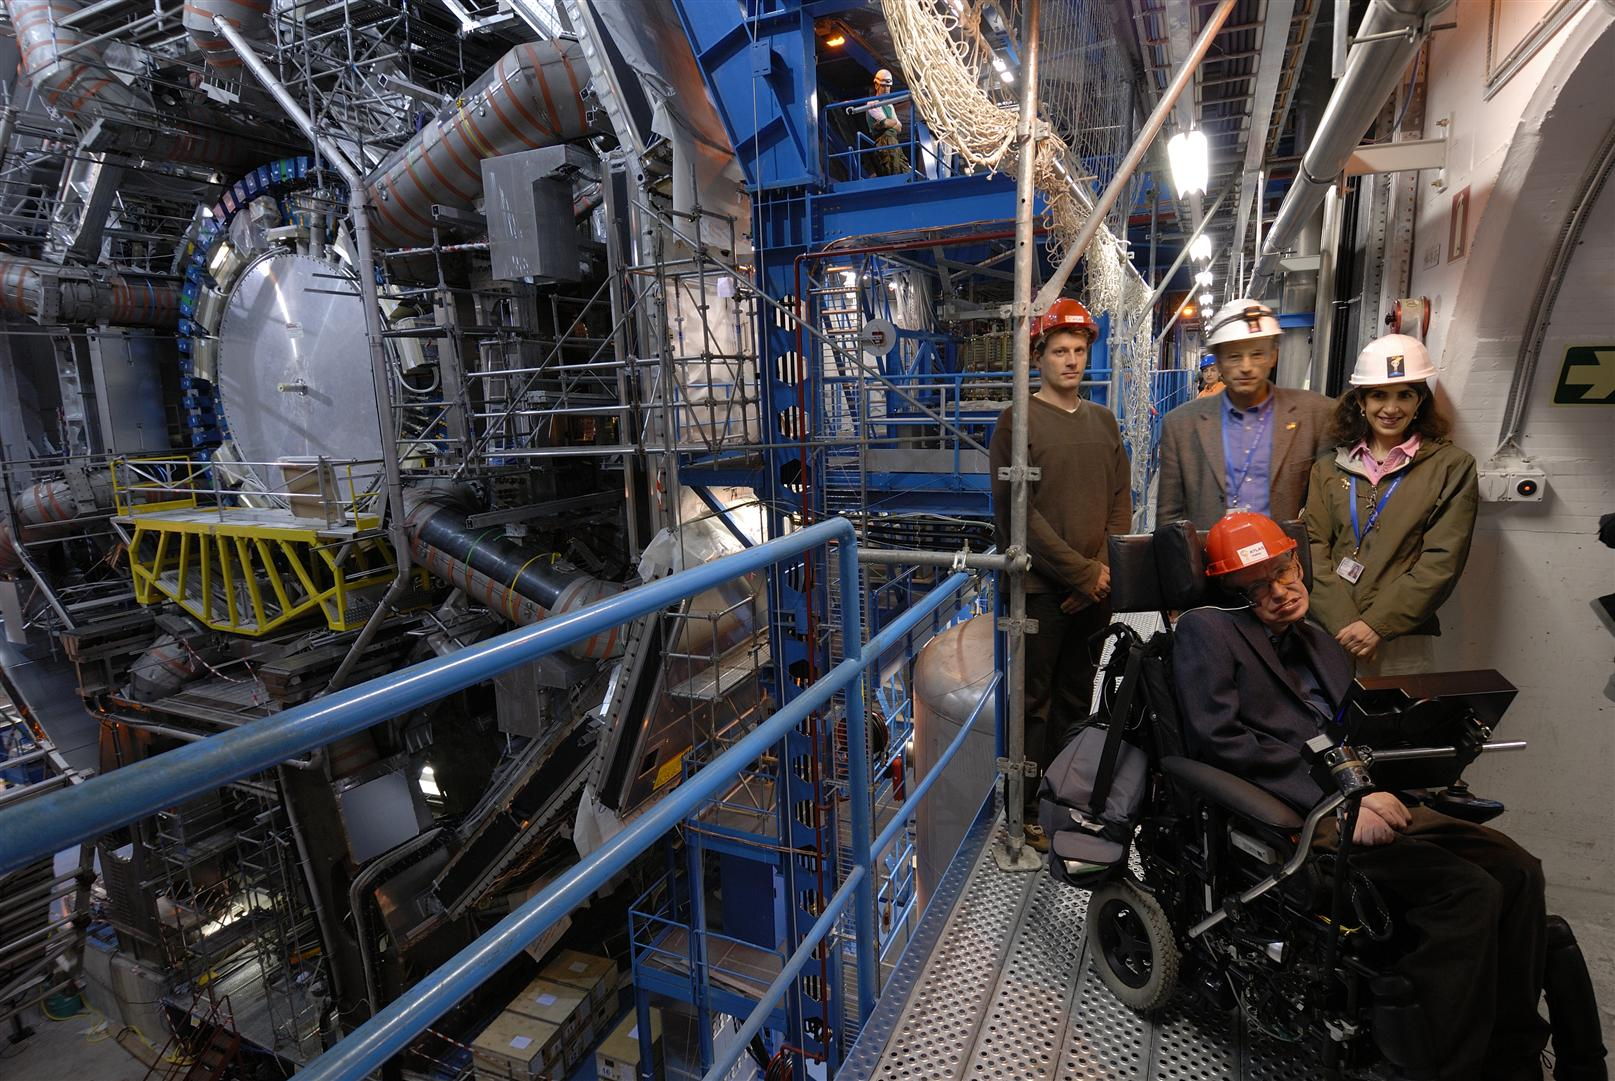 Stephen Hawking at CERN in 2006